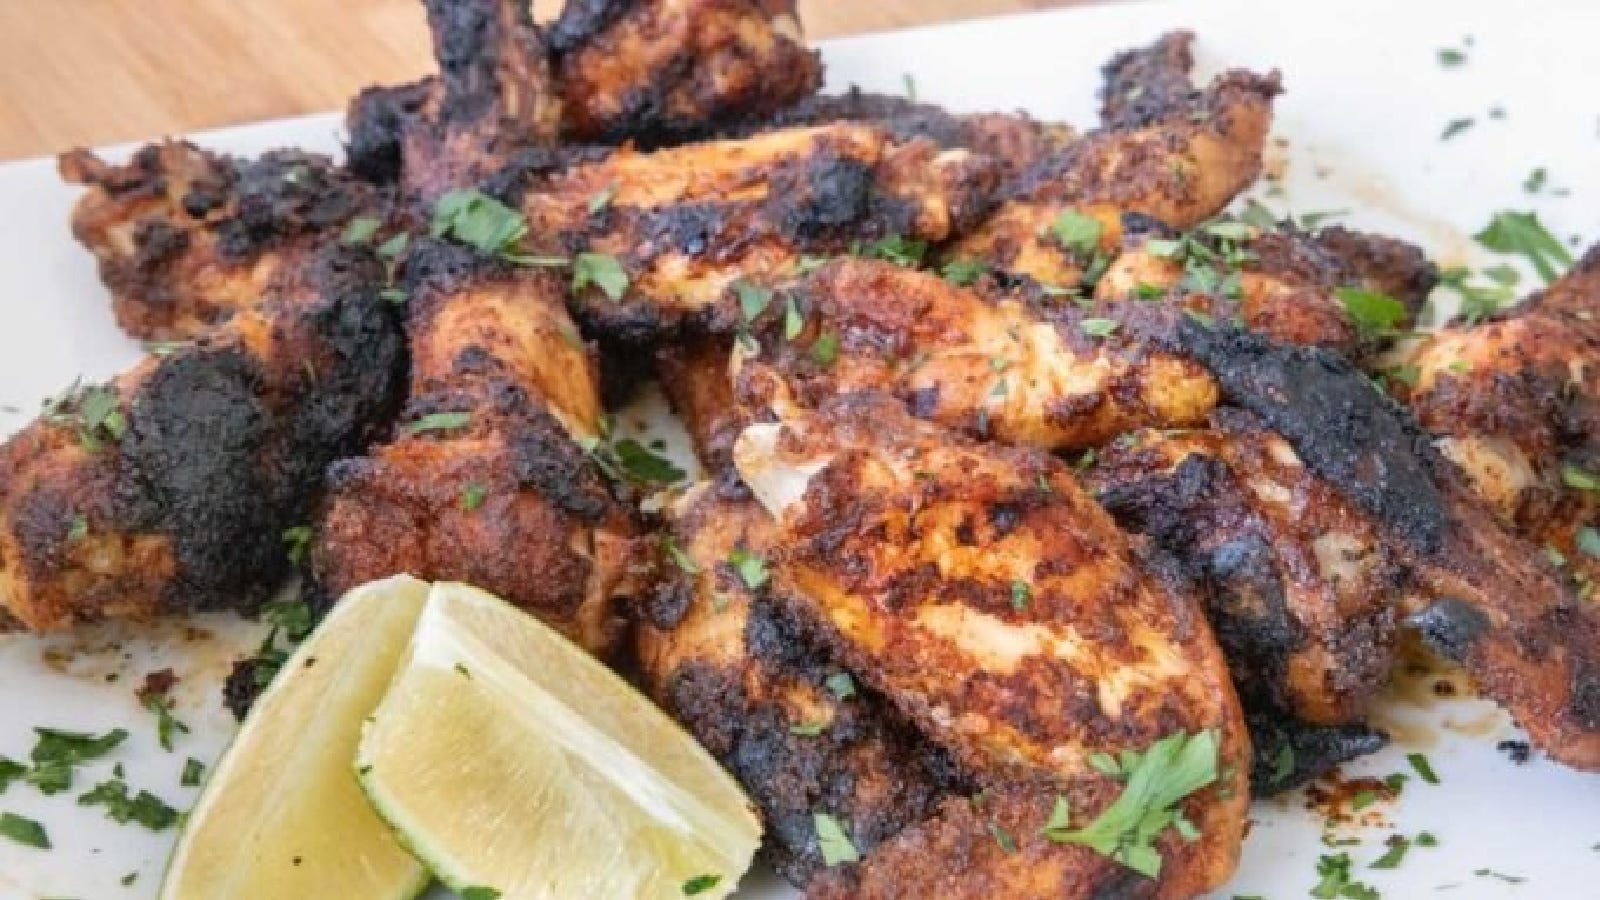 Dry rub chicken wings topped with parsley and garnished with lime wedges.